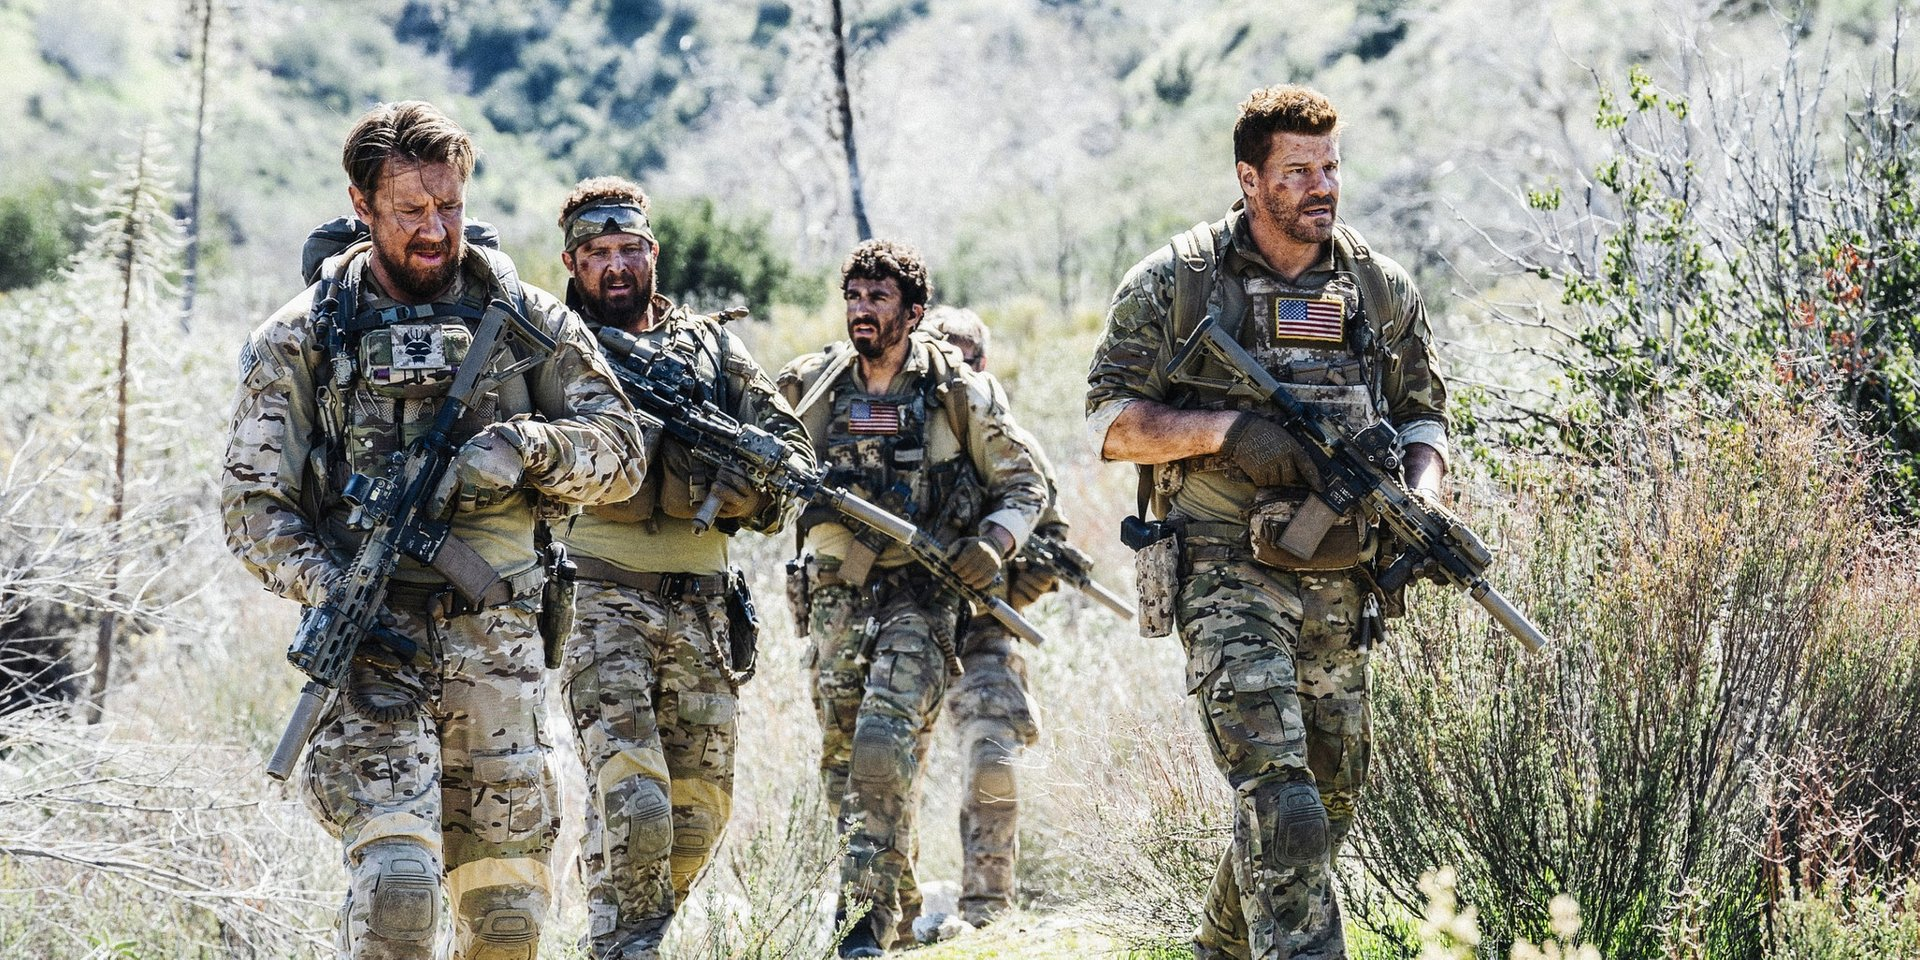 FOX EXTREIA SEGUNDA TEMPORADA DO DRAMA MILITAR 'SEAL TEAM'